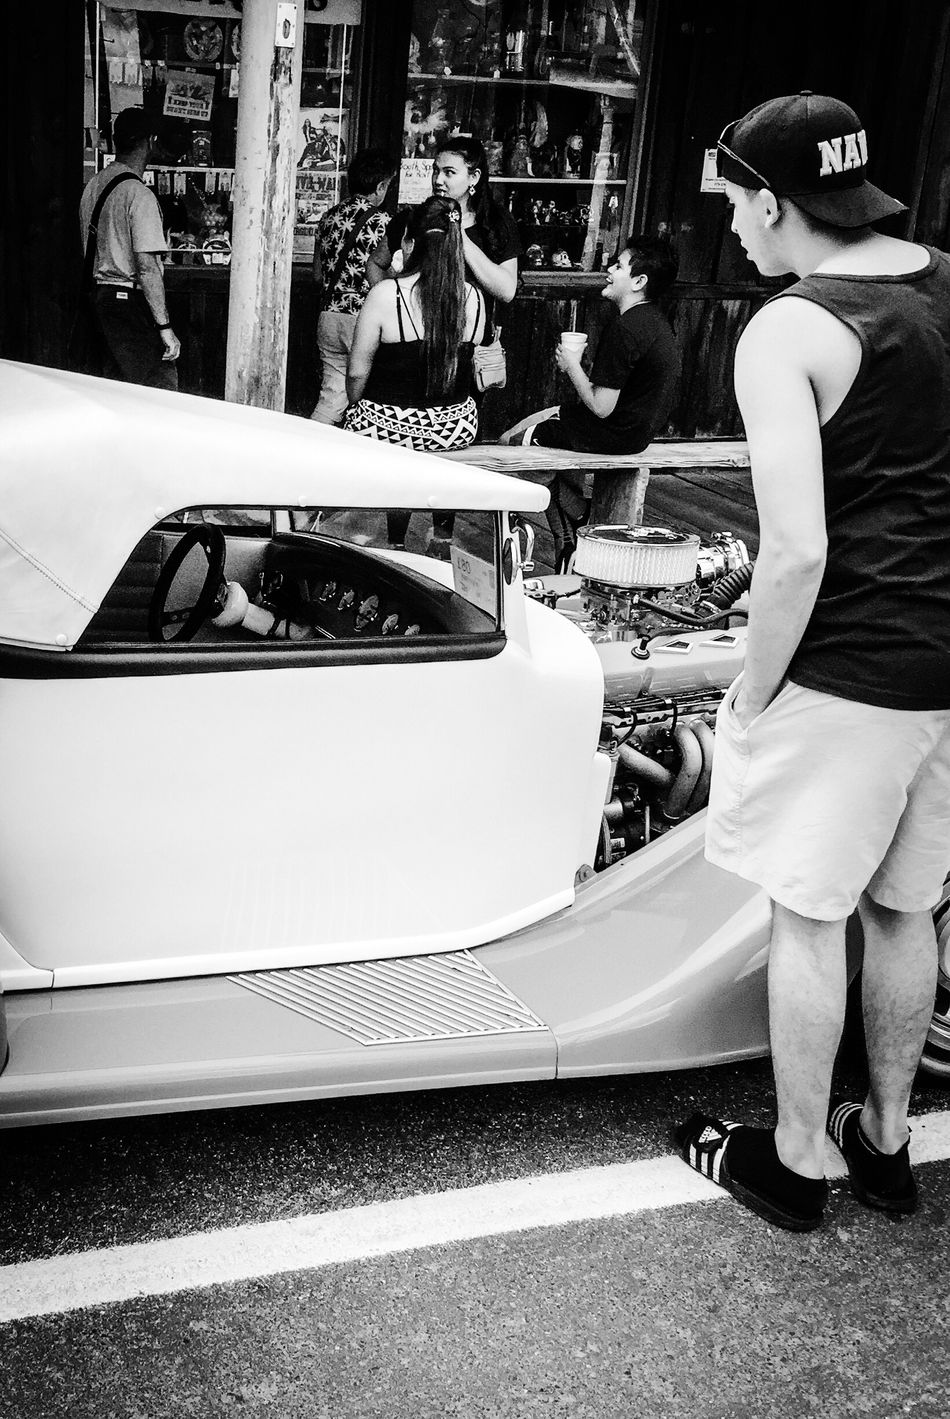 Vacation People Together People Talking Having A Good Time Conversation Man Looking At A Car Collection Car White Car Black And White Black And White Photography People And Places Monochrome Photography The Drive